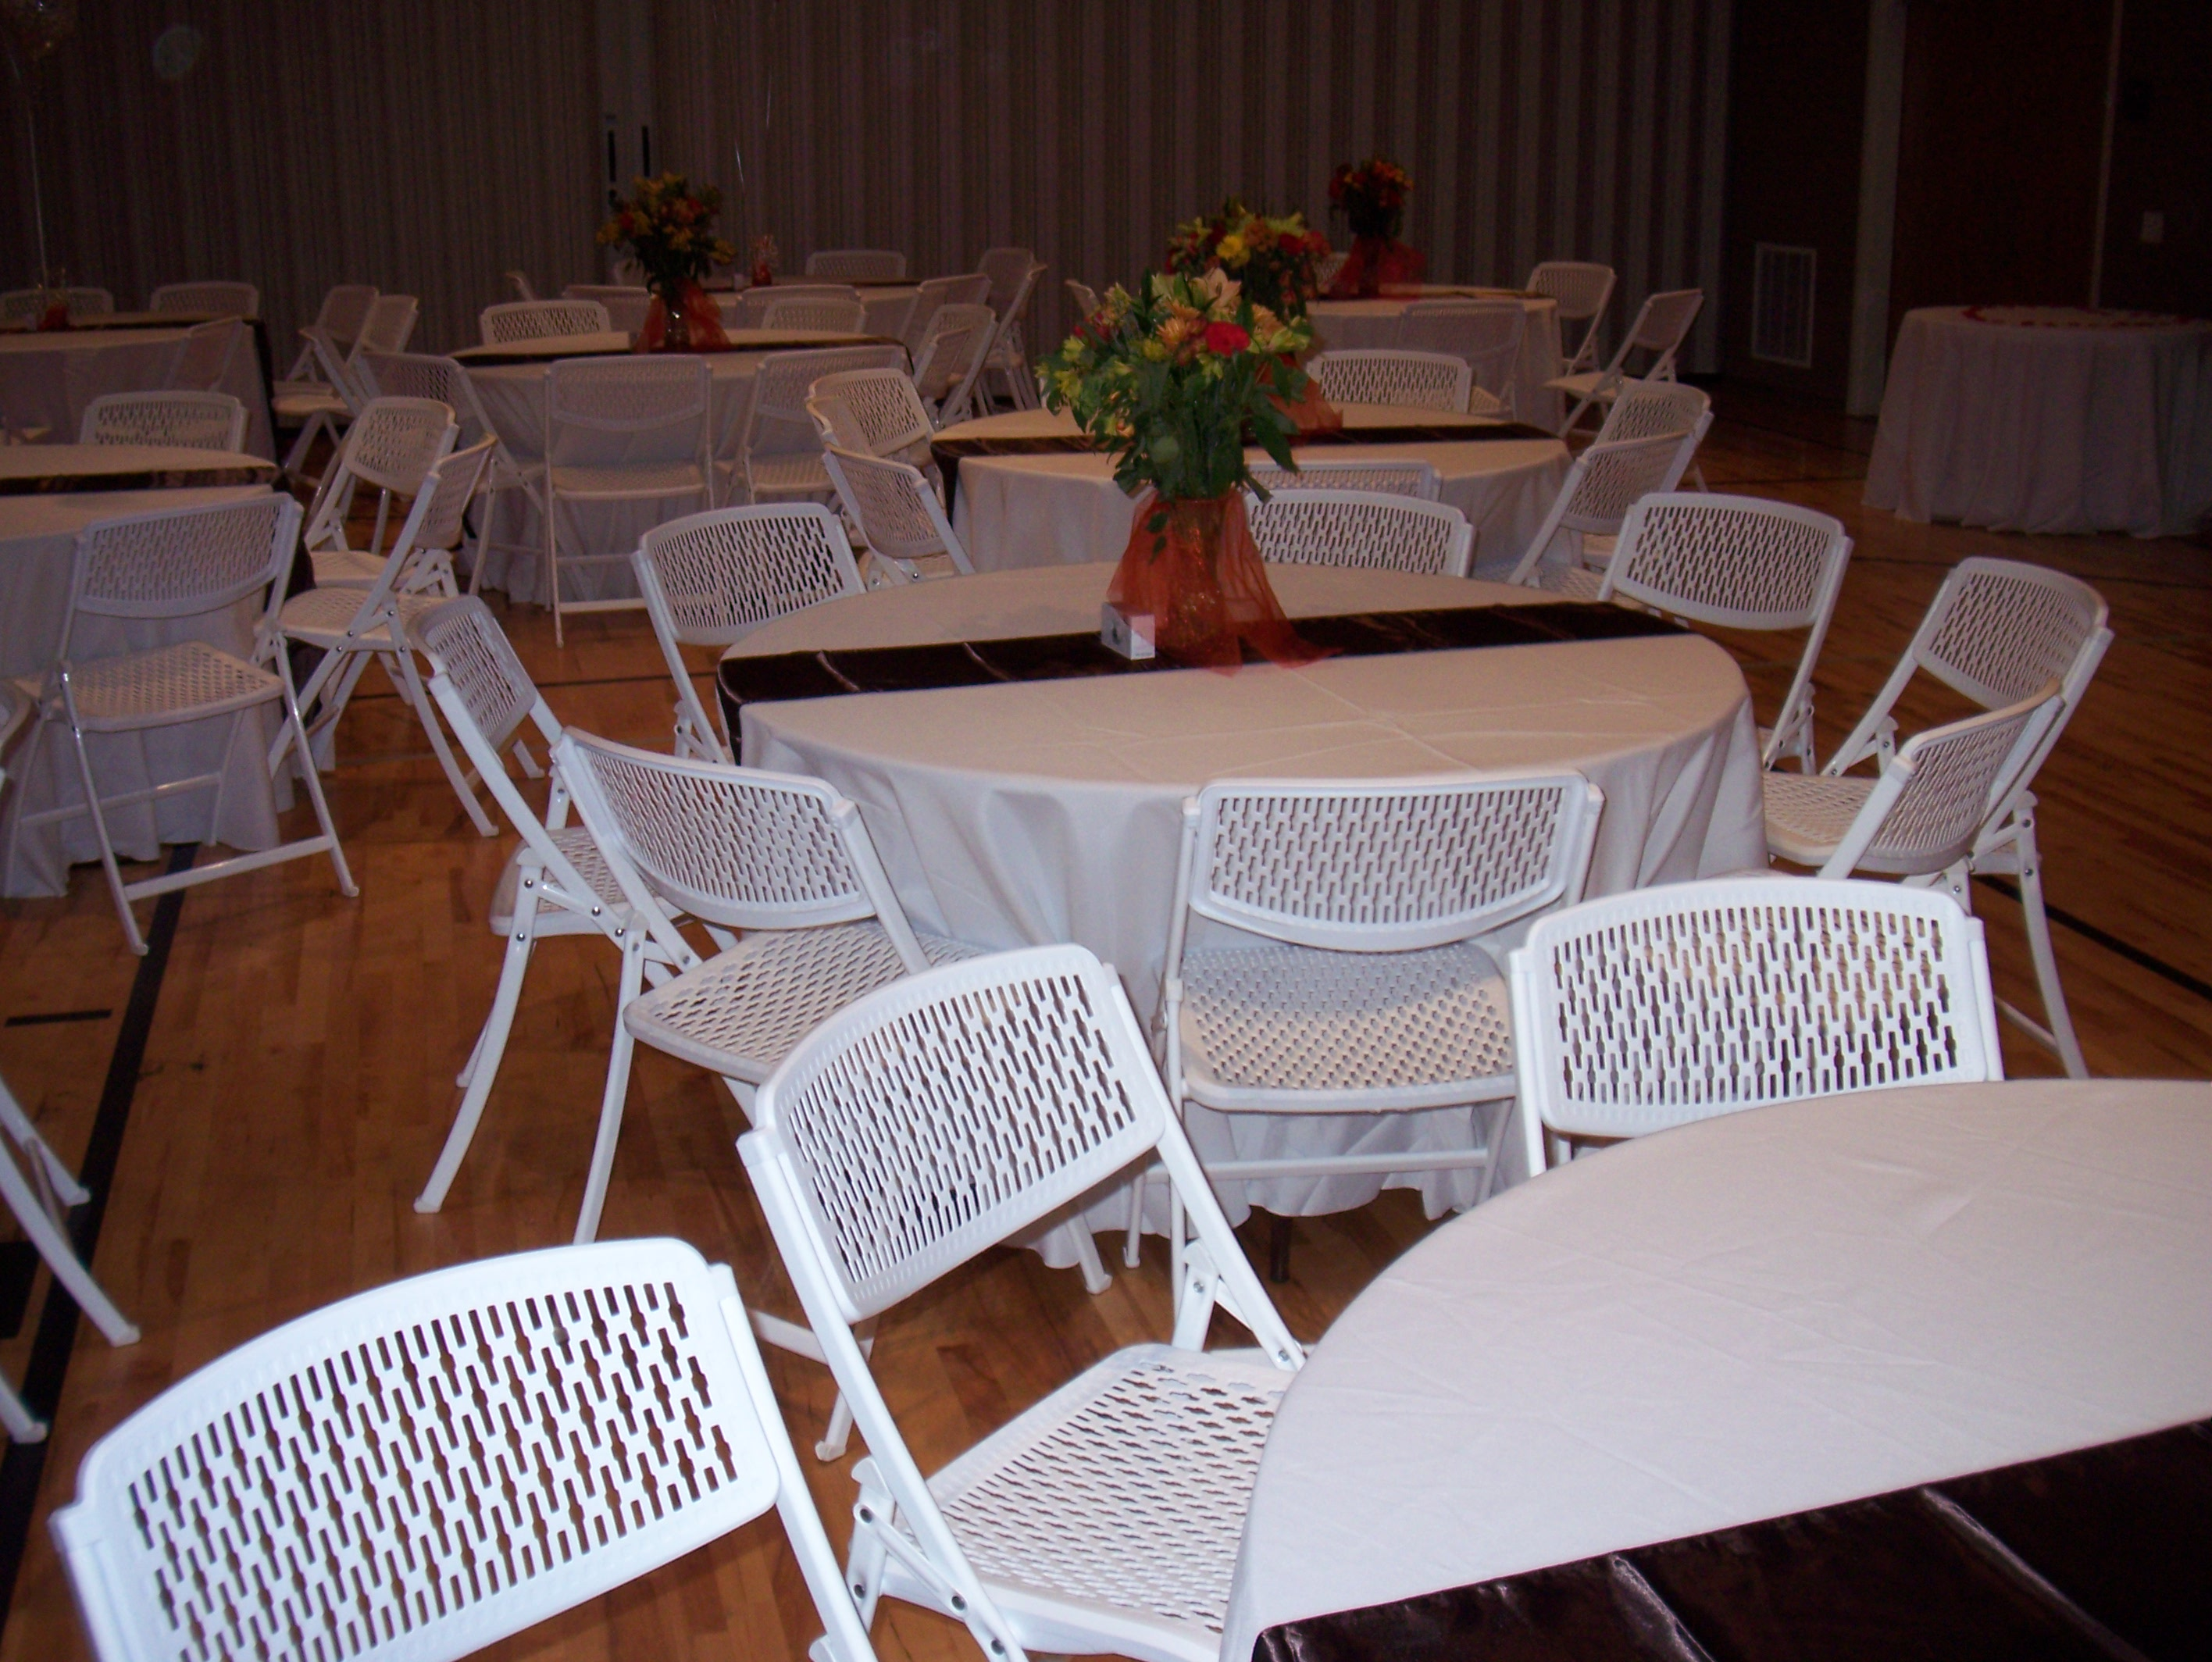 chair cover rental cost office guide bridal extravaganza in sandy utah chocolate